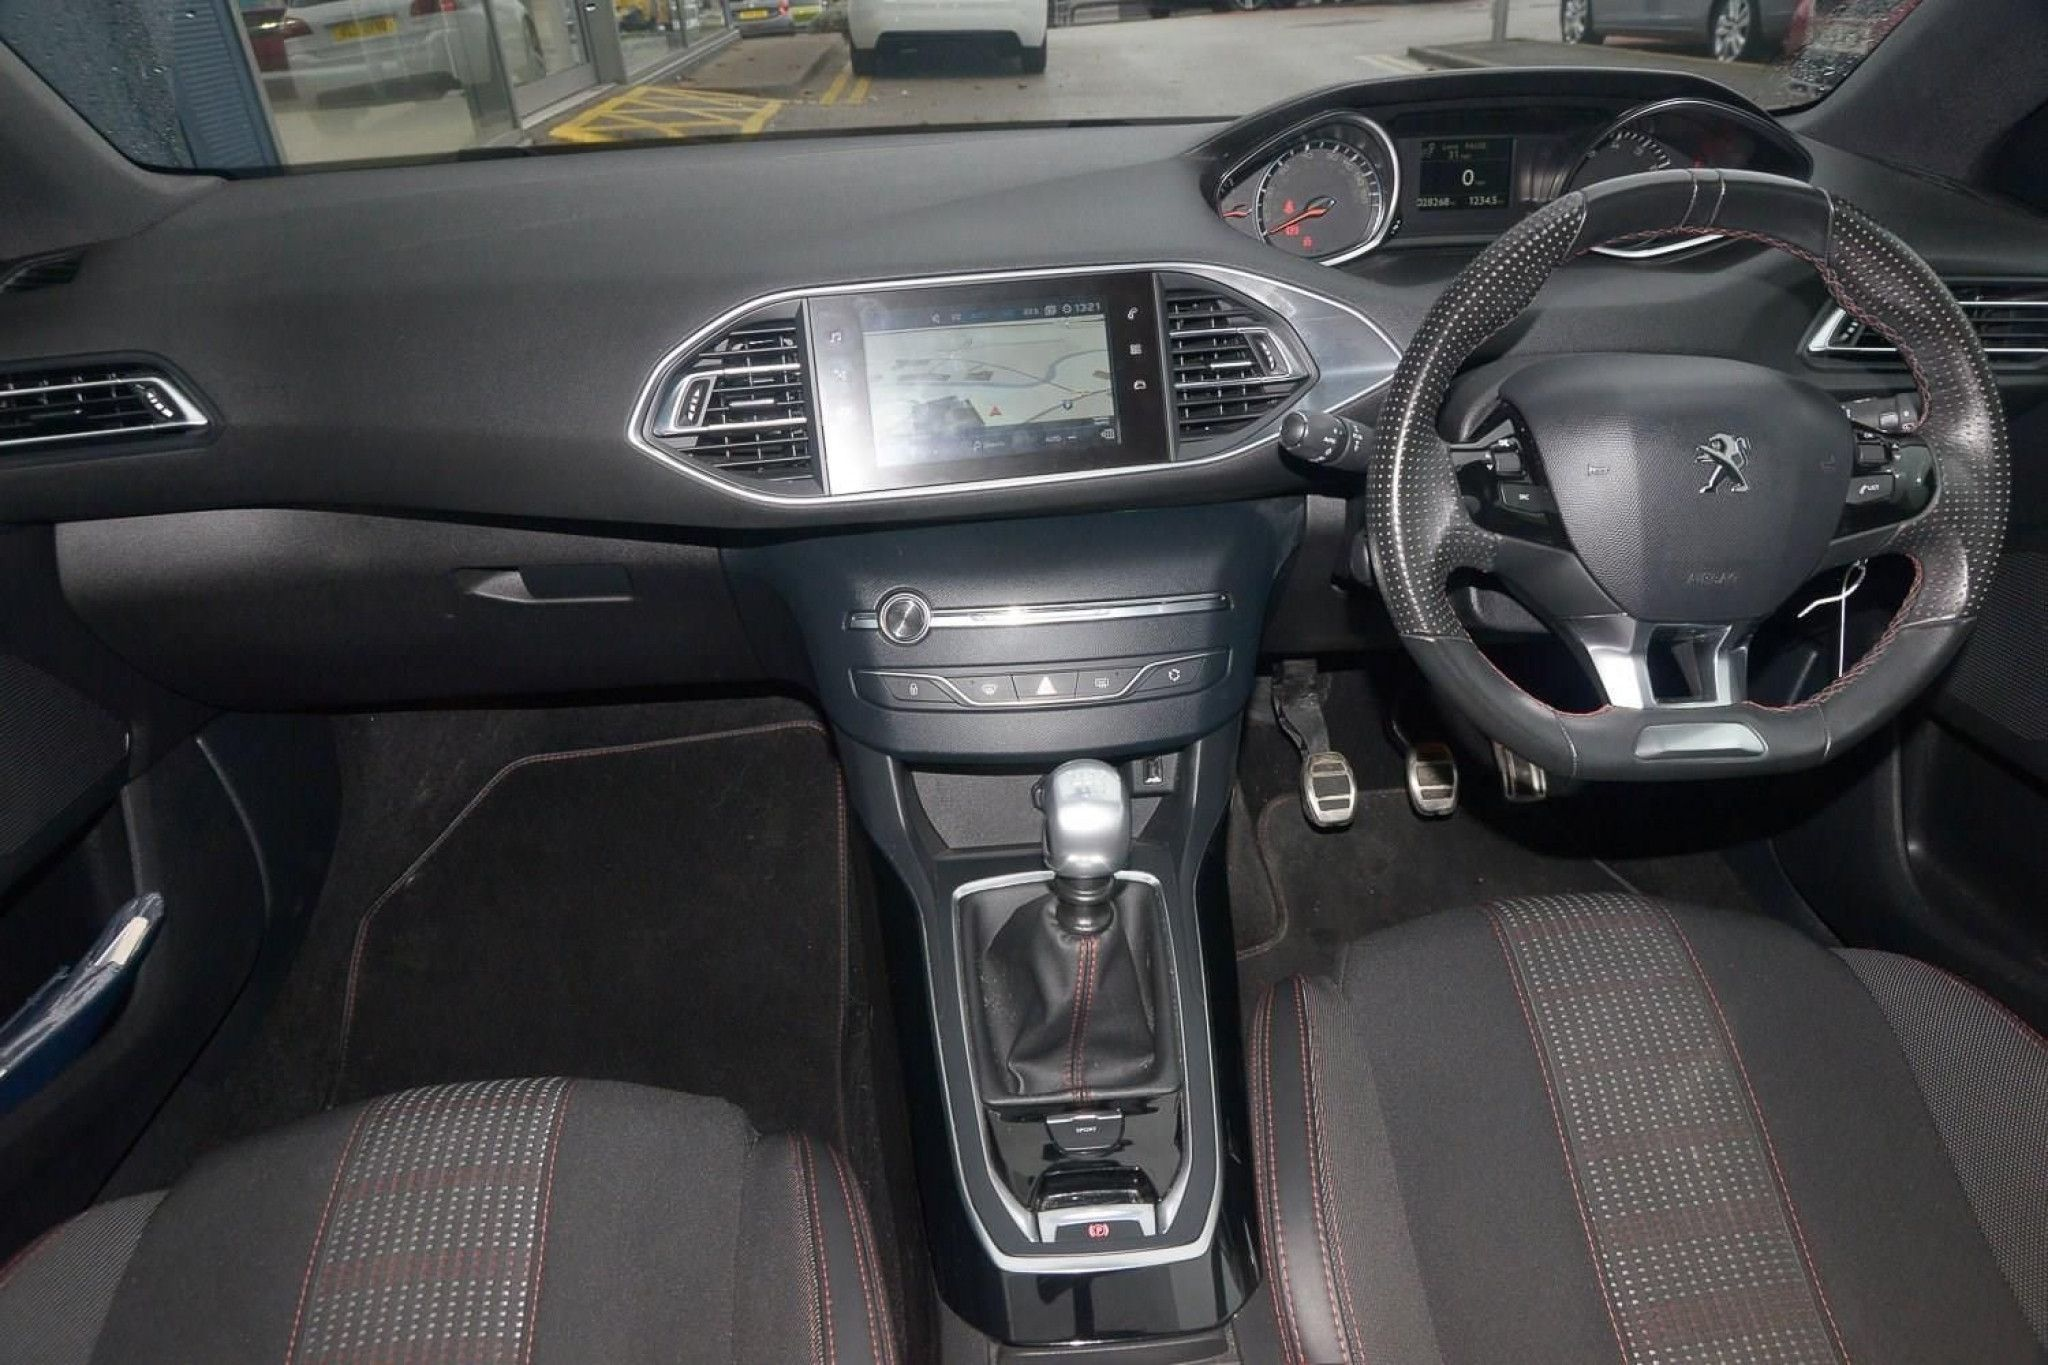 Peugeot 308 1 2 Puretech 130 Gt Line 5dr In 2020 Peugeot Cars For Sale Used Cars